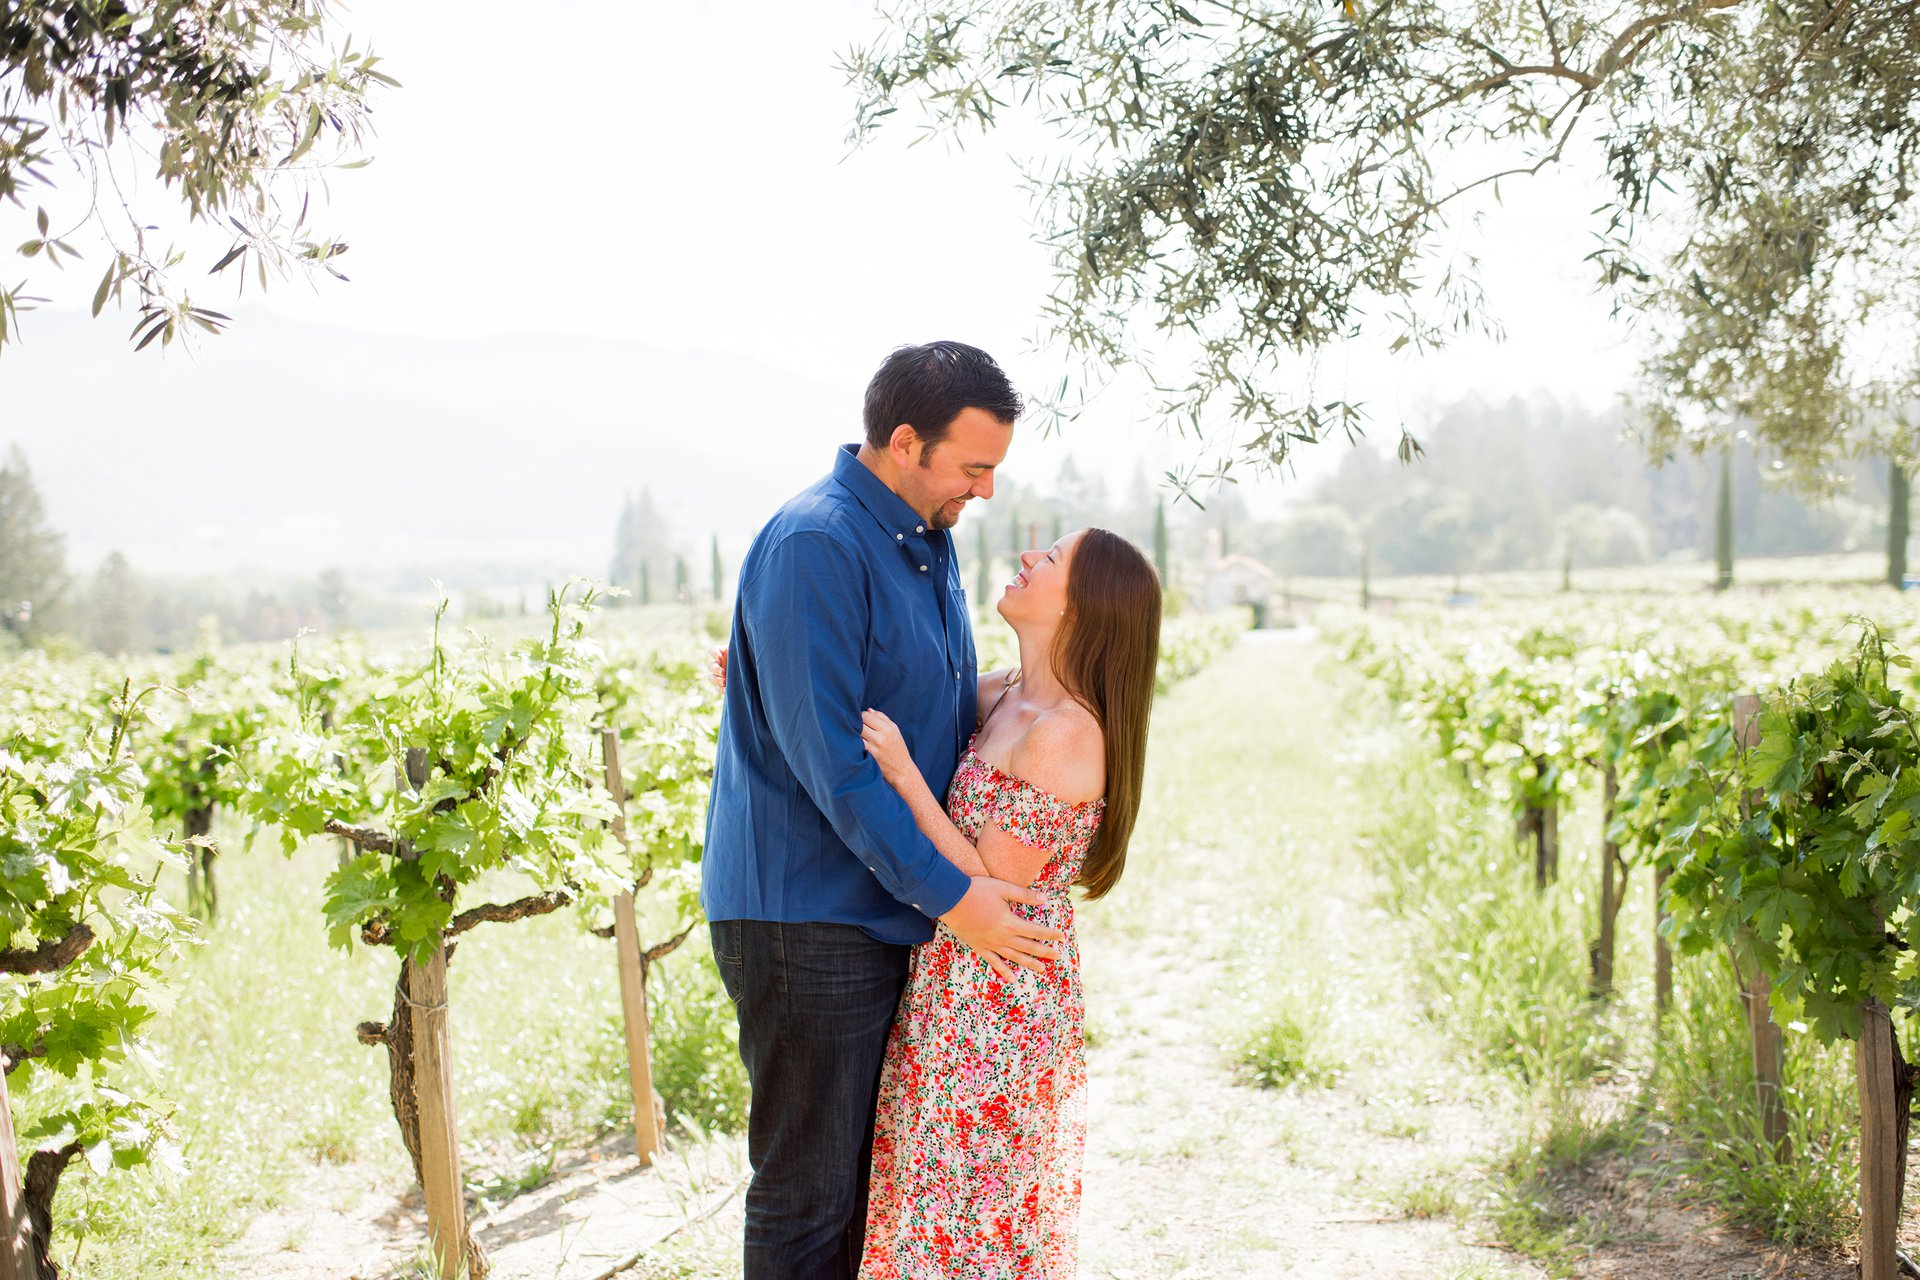 Napa-Sonoma-United States-travel-story-Flytographer-8